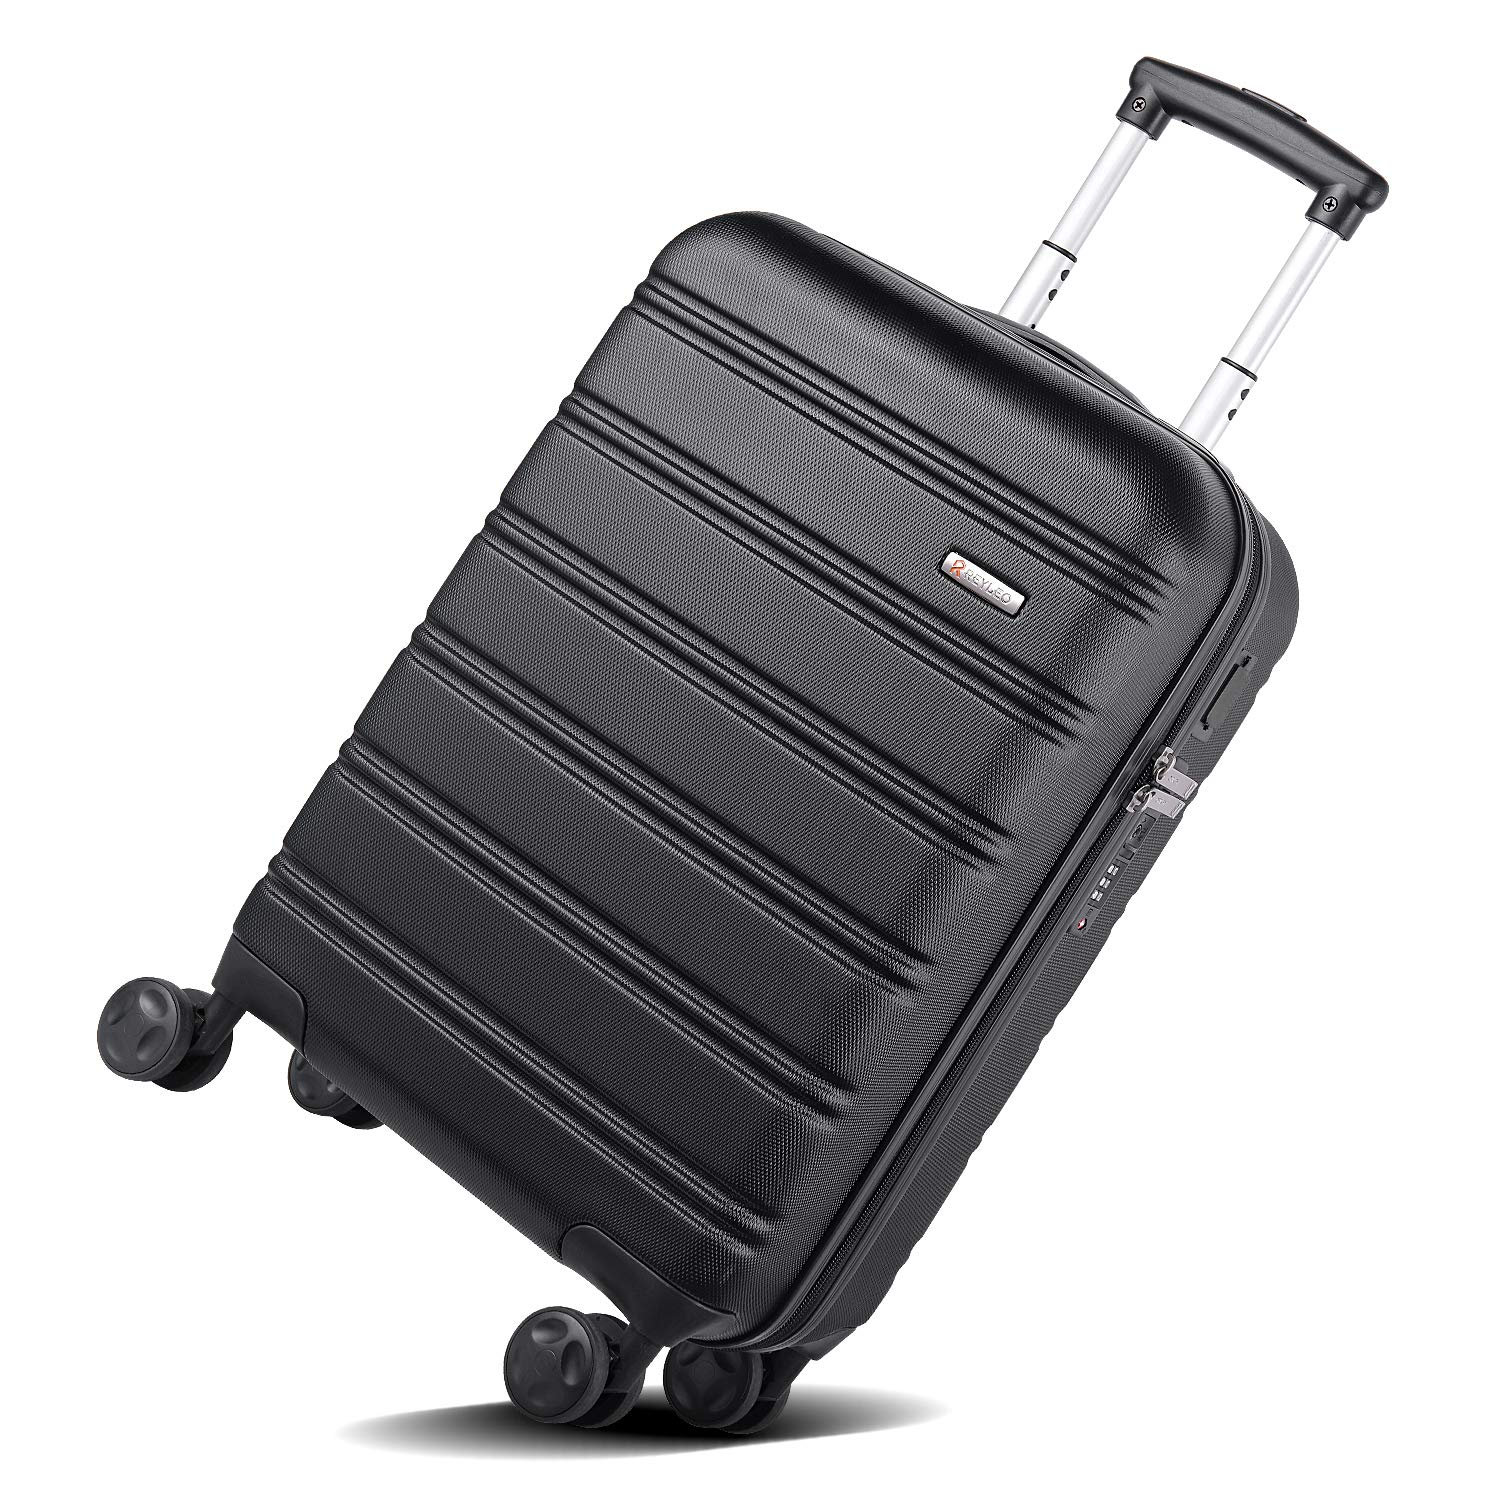 4a130d5d5 REYLEO Hardside Spinner Luggage 20 Inch Carry On Luggage Lightweight Travel  Suitcase with 8 Silent Wheels Two USB Charging Port Built-in TSA Lock,  LUG20A